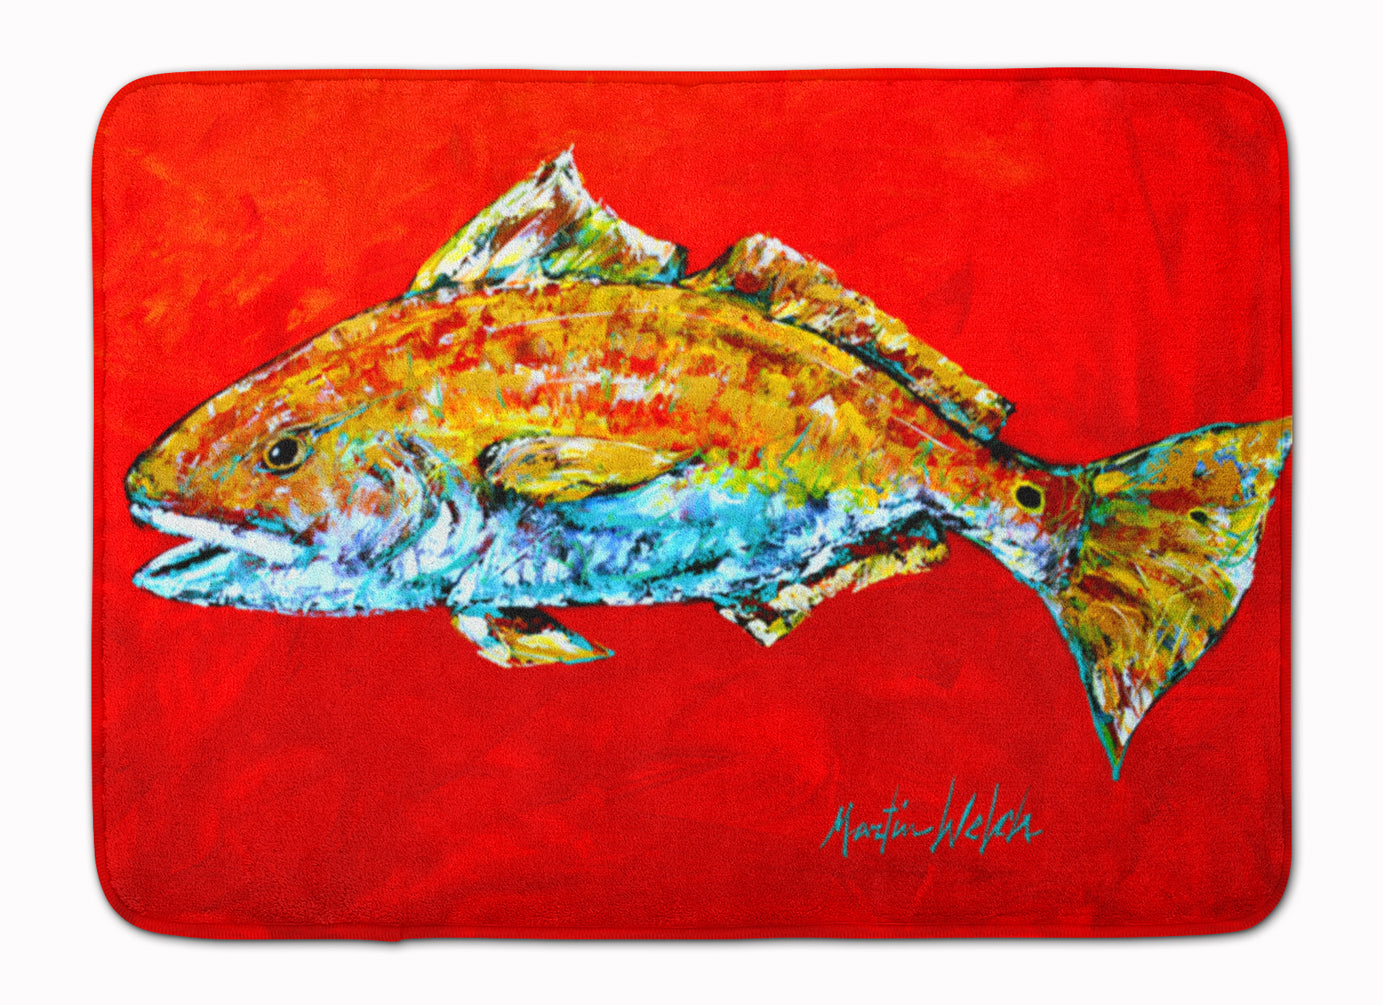 Fish - Red Fish Red Head Machine Washable Memory Foam Mat MW1111RUG by Caroline's Treasures